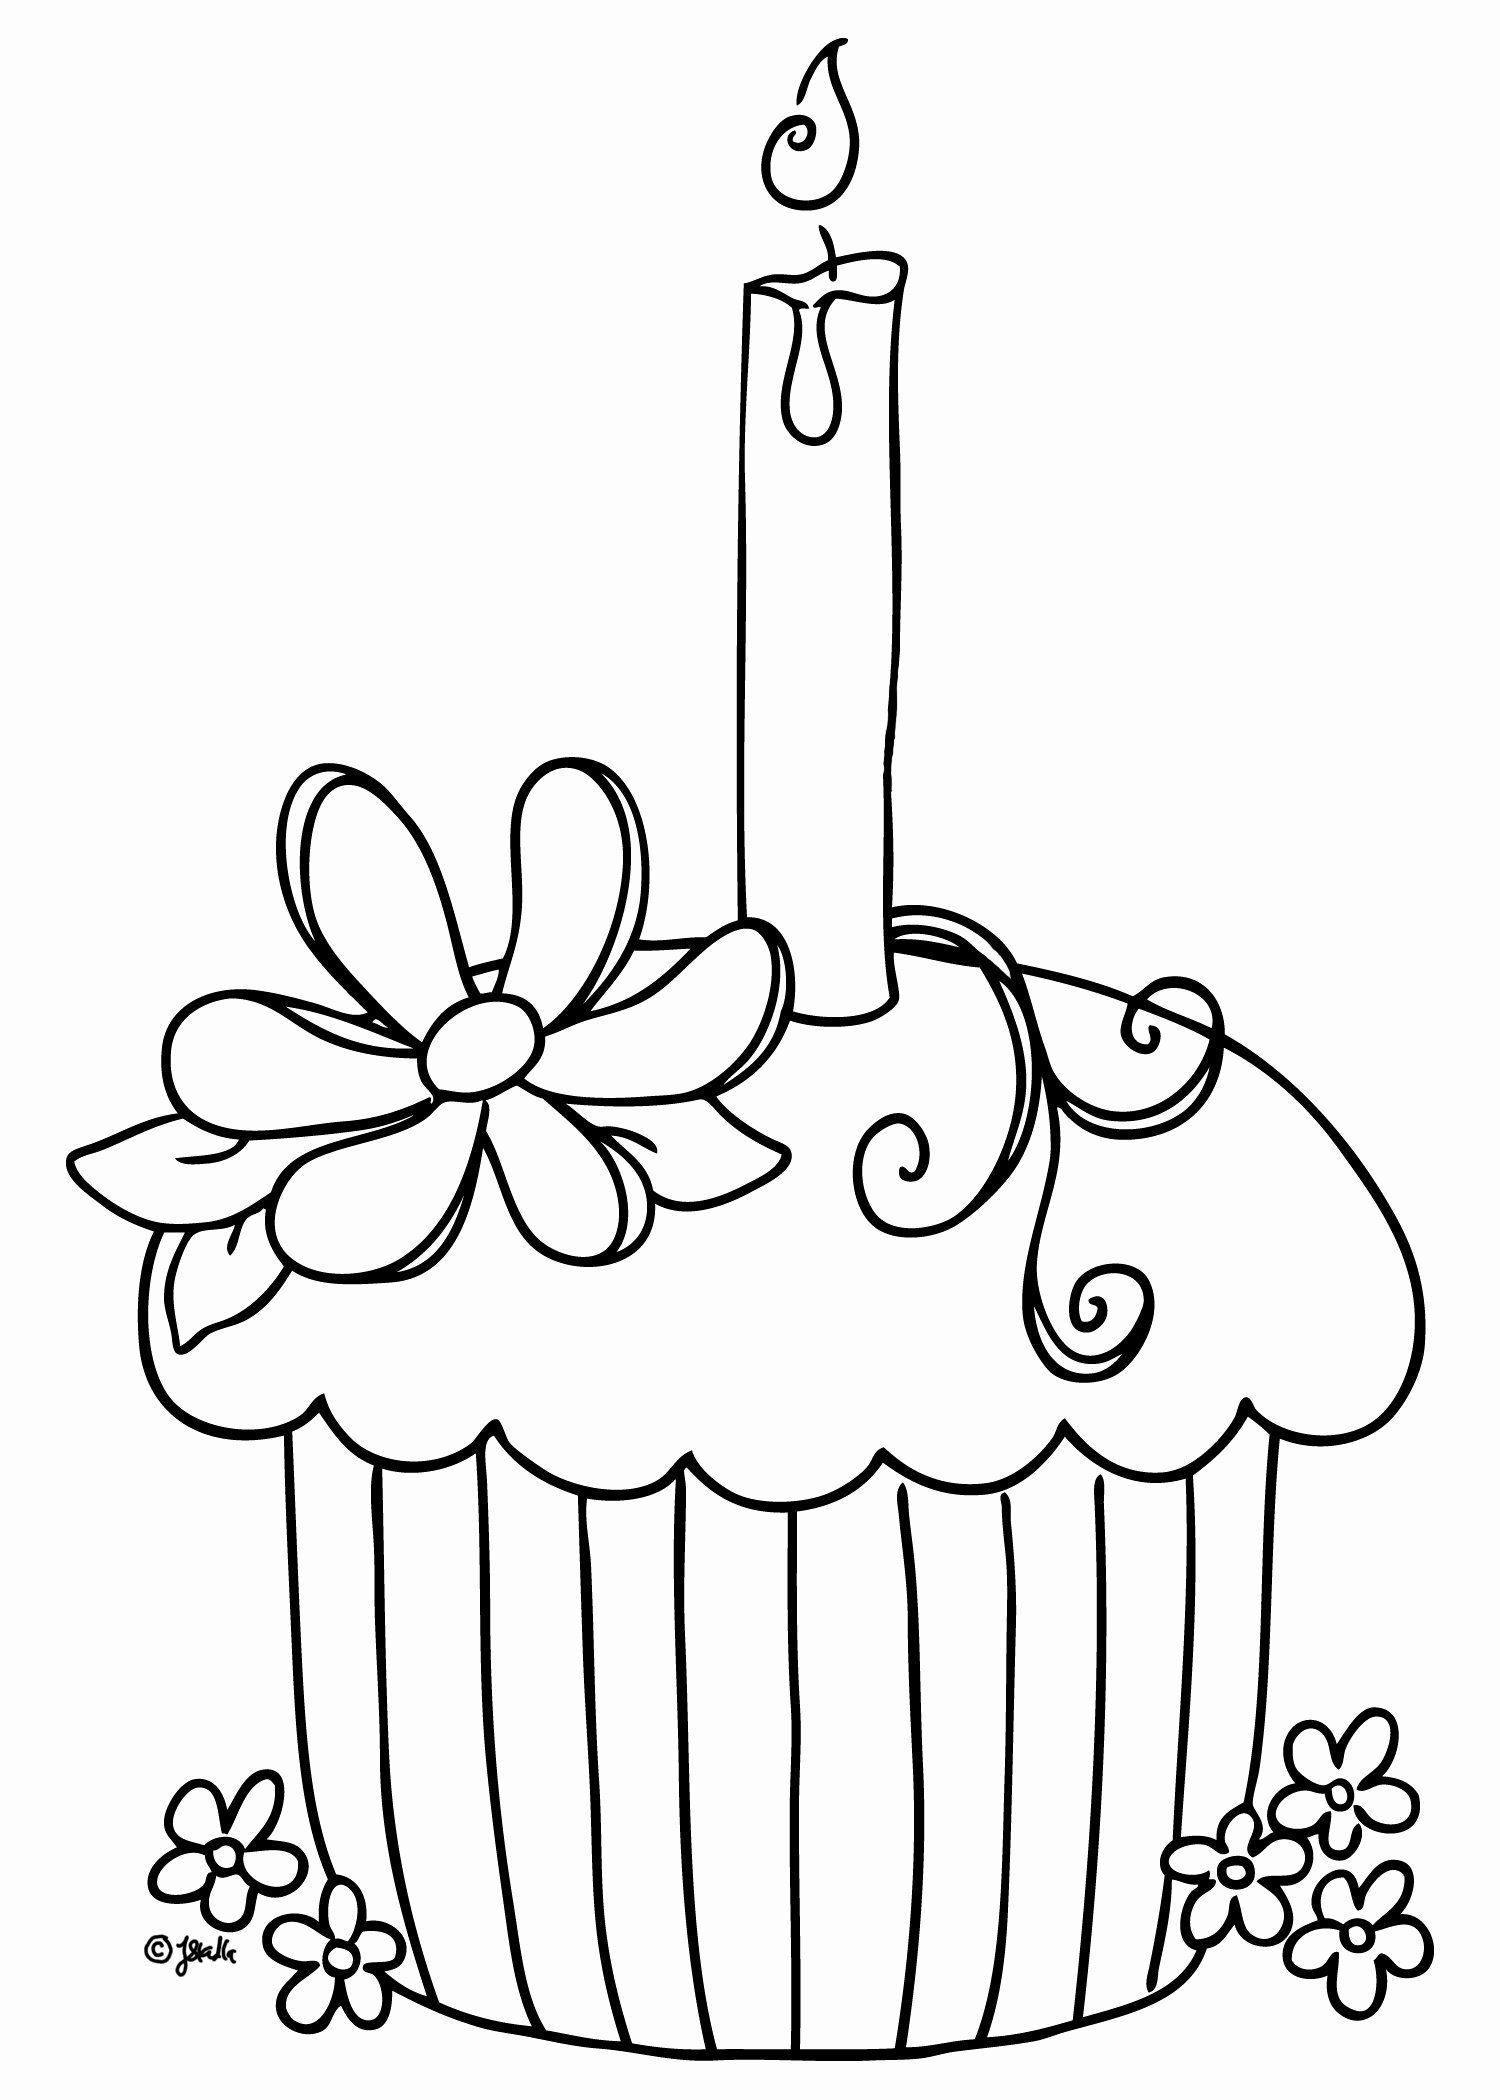 Printable Birthday Coloring Pages New Free Printable Cupcake Coloring Pages For Ki Birthday Coloring Pages Cupcake Coloring Pages Happy Birthday Coloring Pages